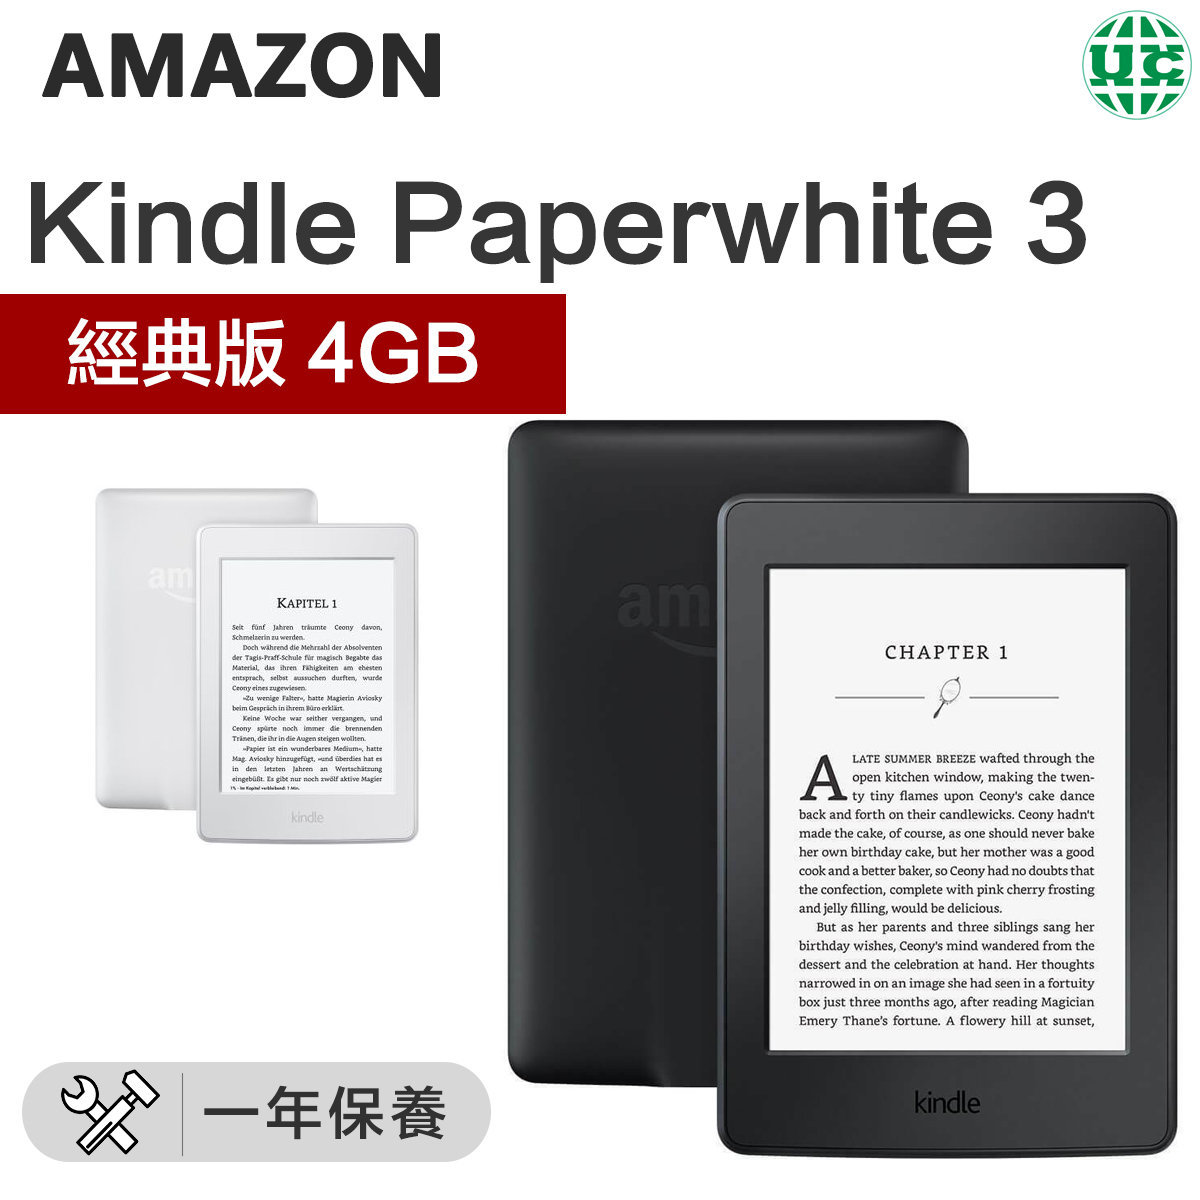 Kindle Paperwhite 3 Classic Black 4GB Wifi(parallel import)